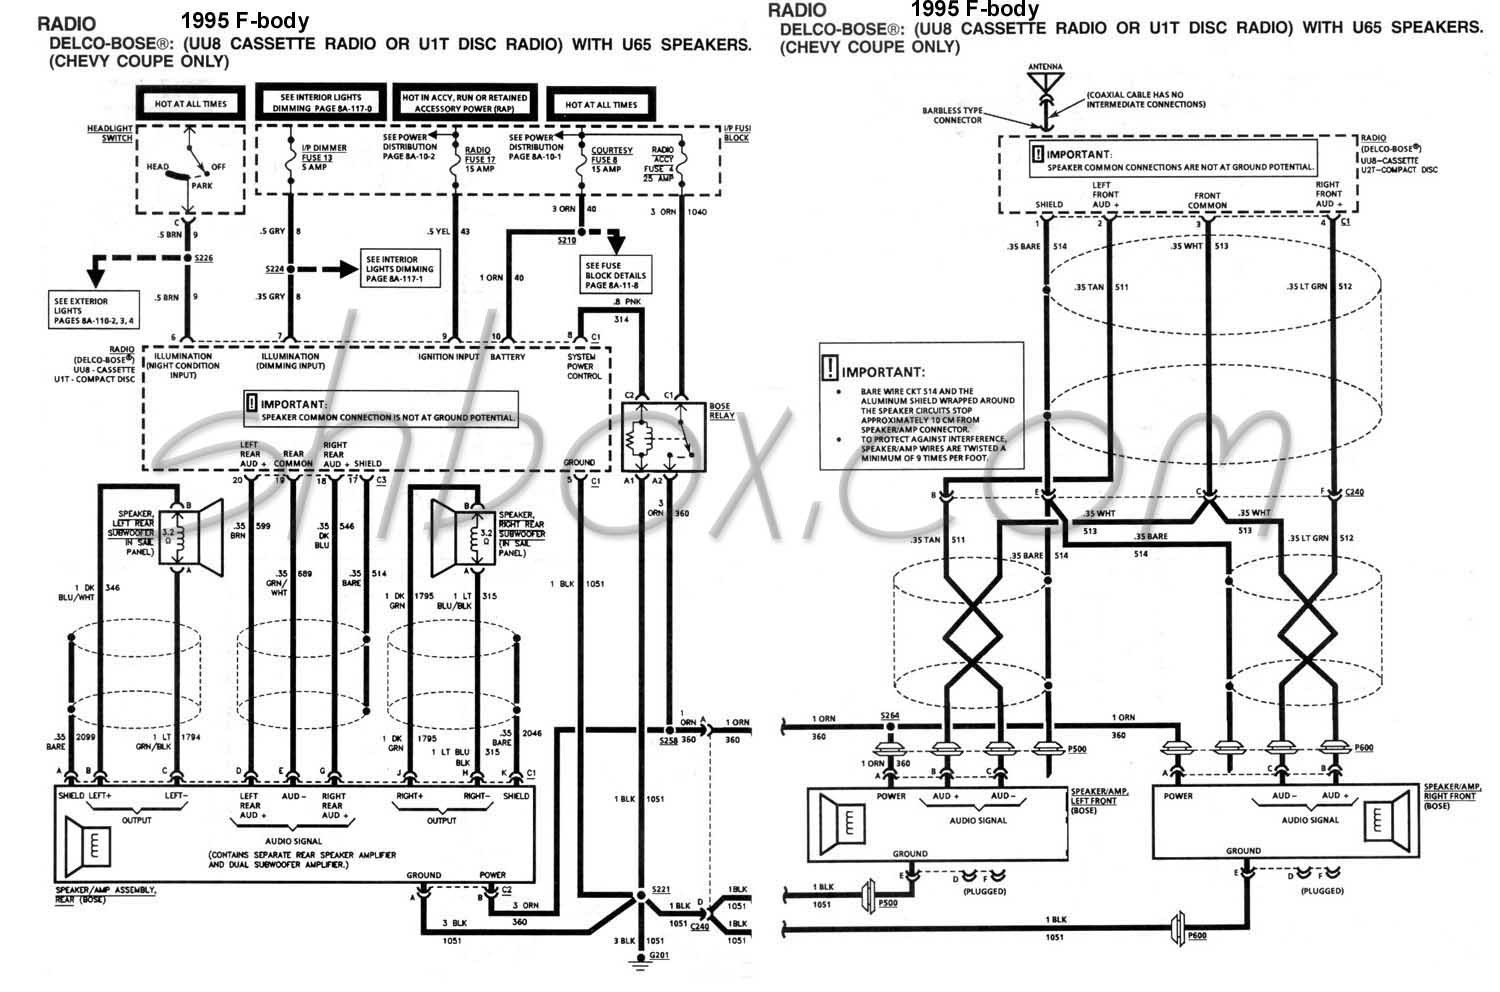 hight resolution of 1997 chevy camaro wiring diagram detailed wiring diagram 1969 camaro dash wiring diagram 1997 chevy camaro radio wiring diagram